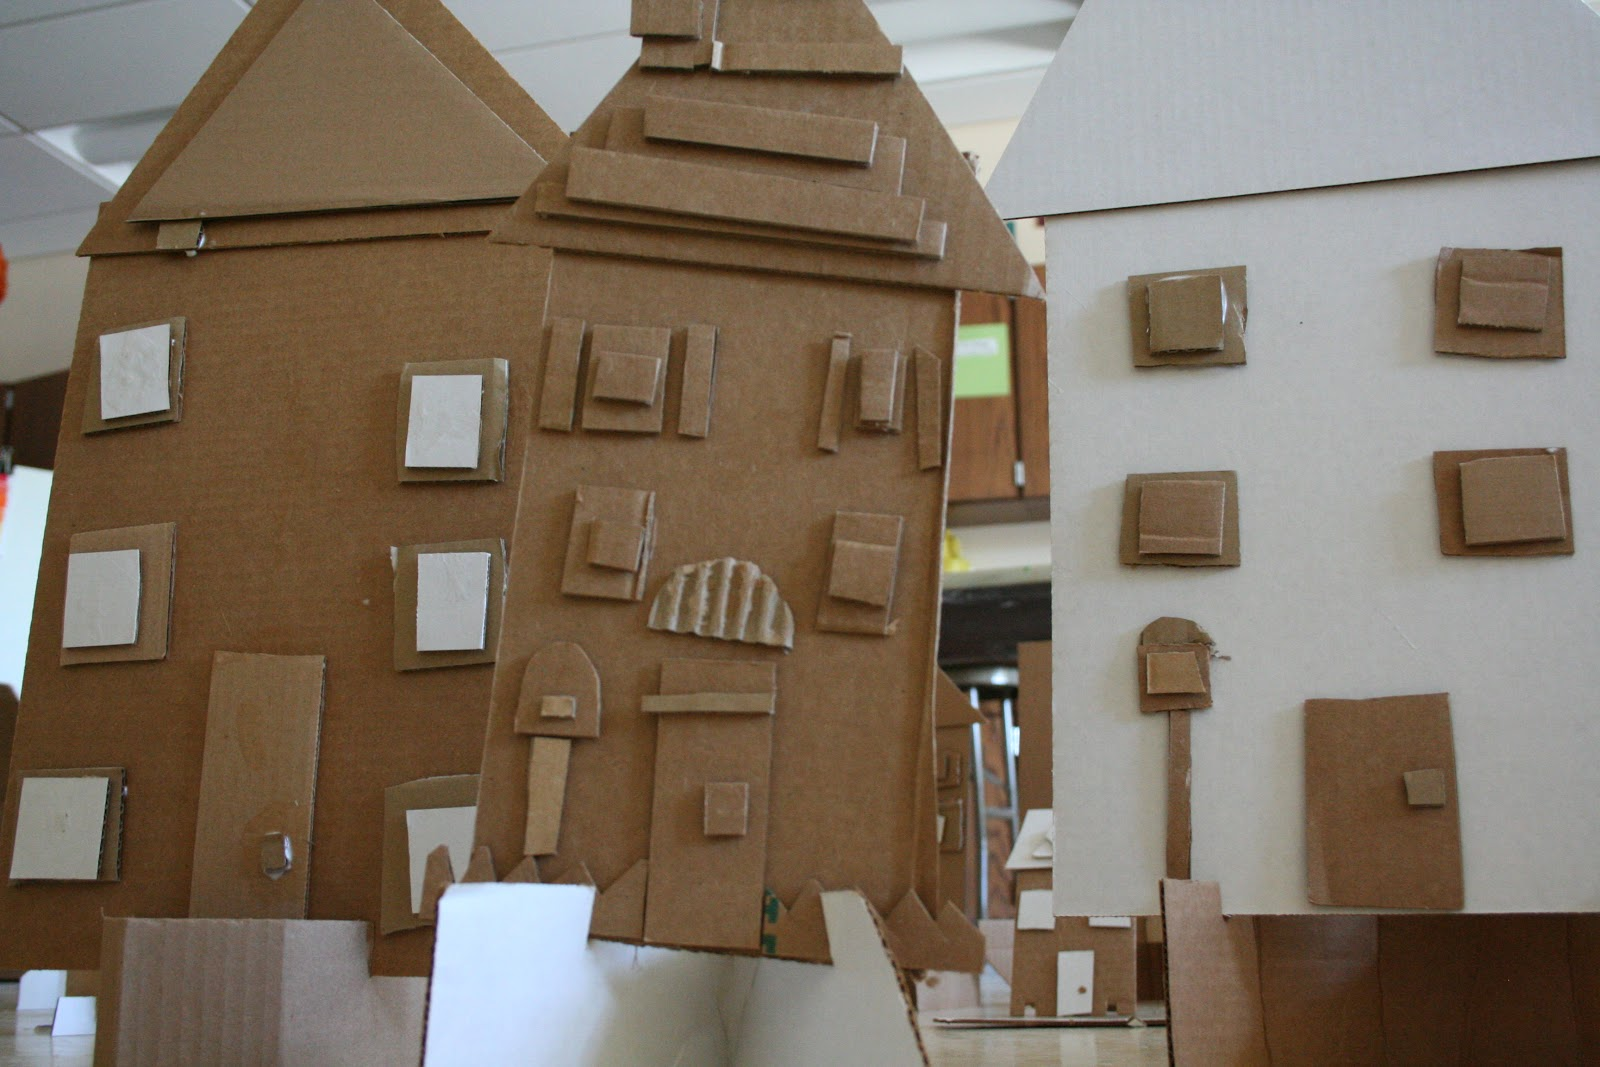 Art project girl recycled cardboard city for Cardboard for projects